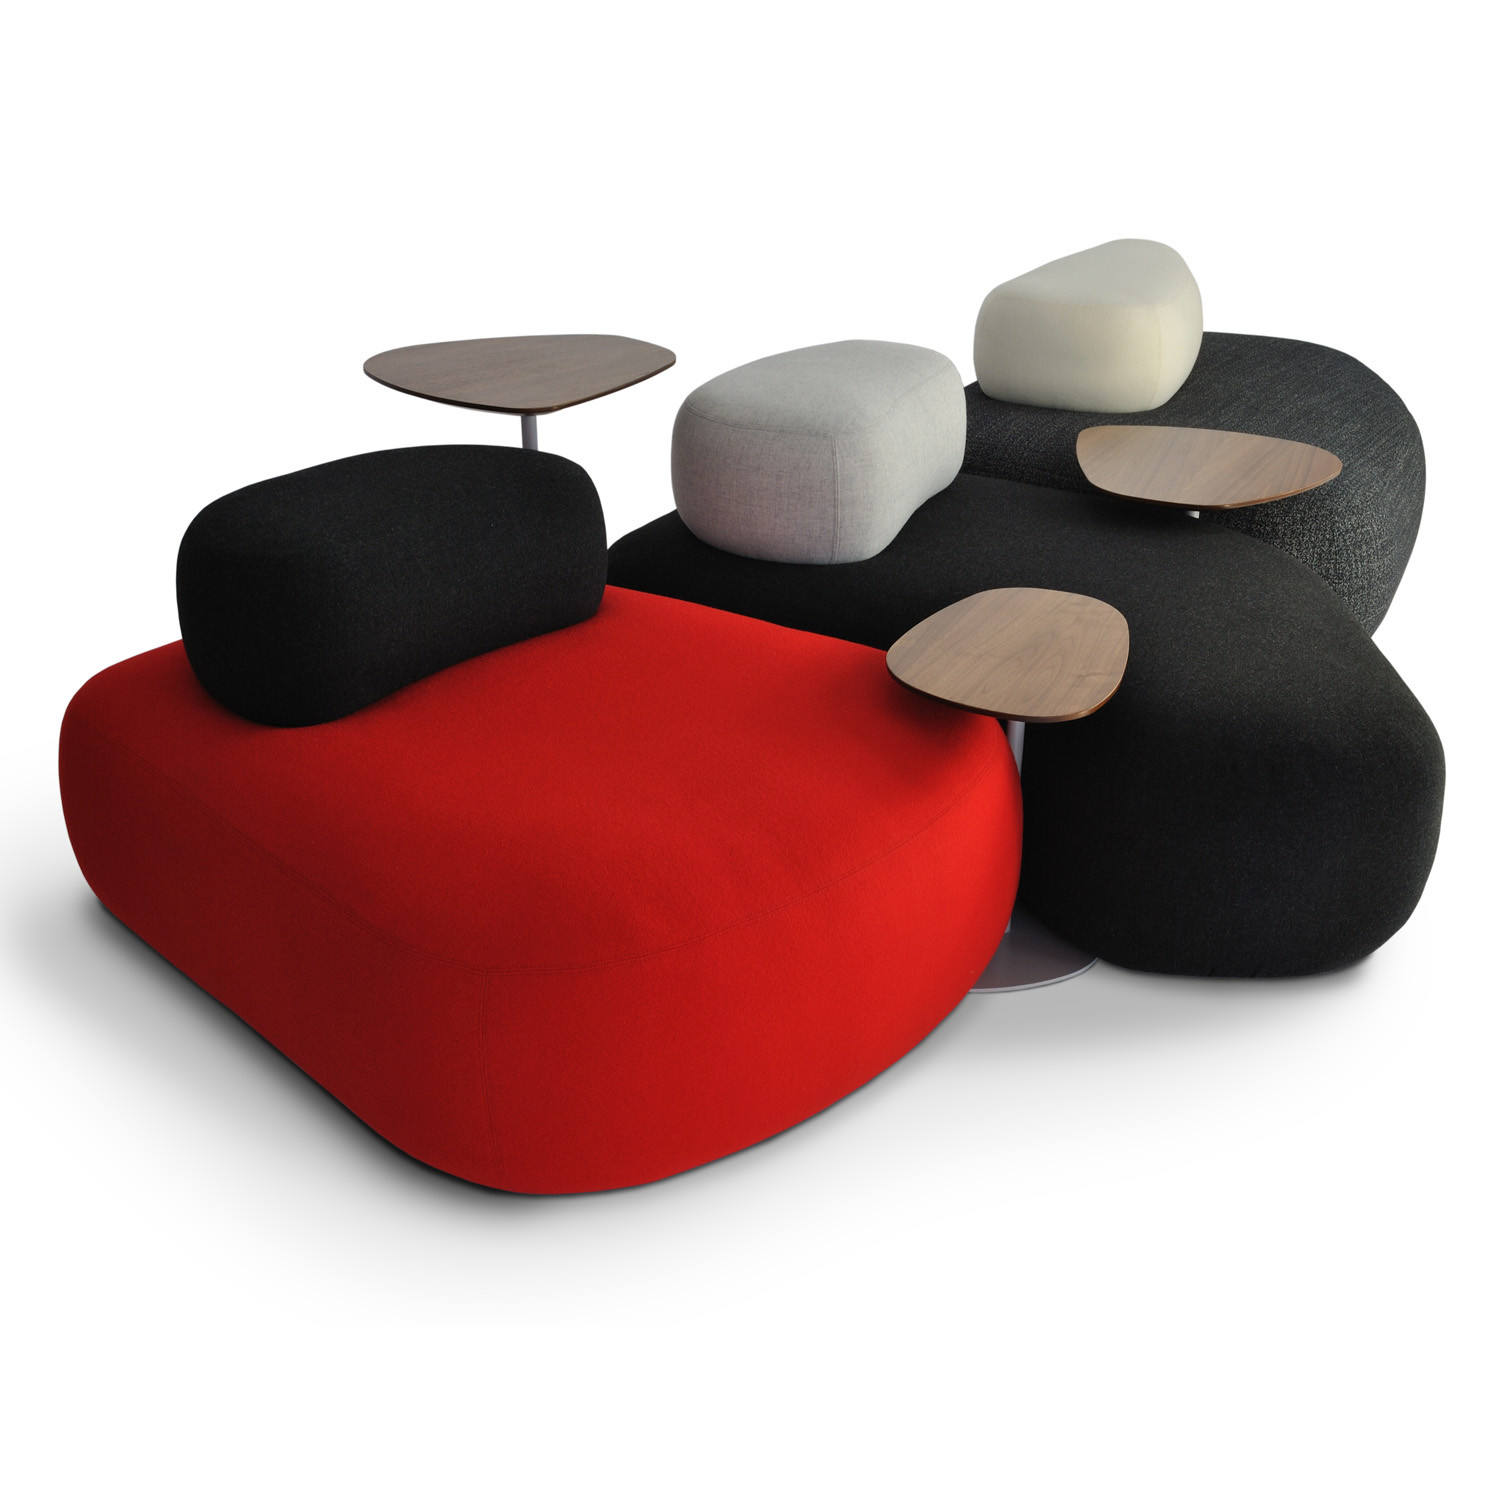 HM63 Pebble Seating and Tables